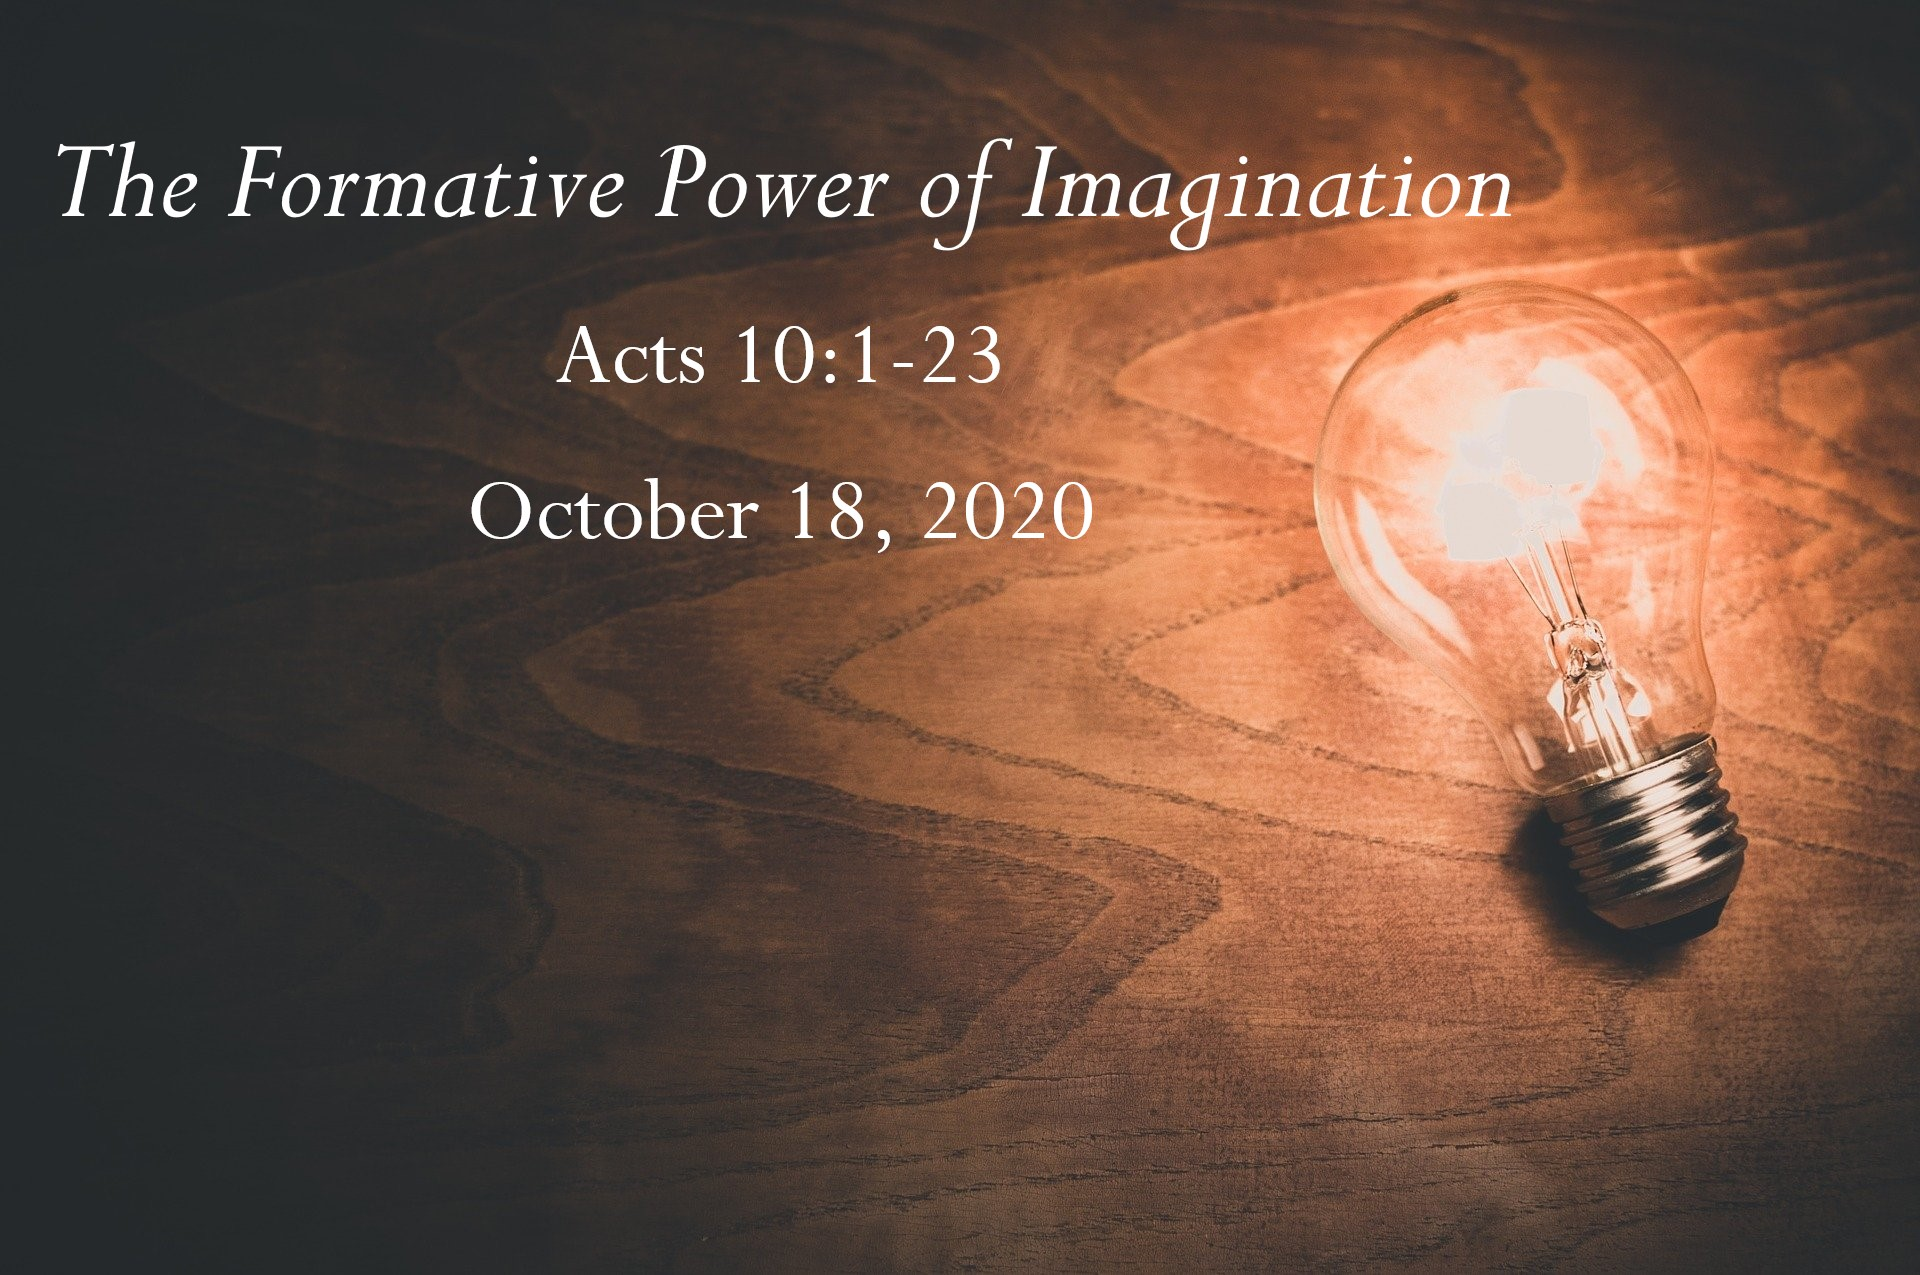 The Formative Power of Imagination